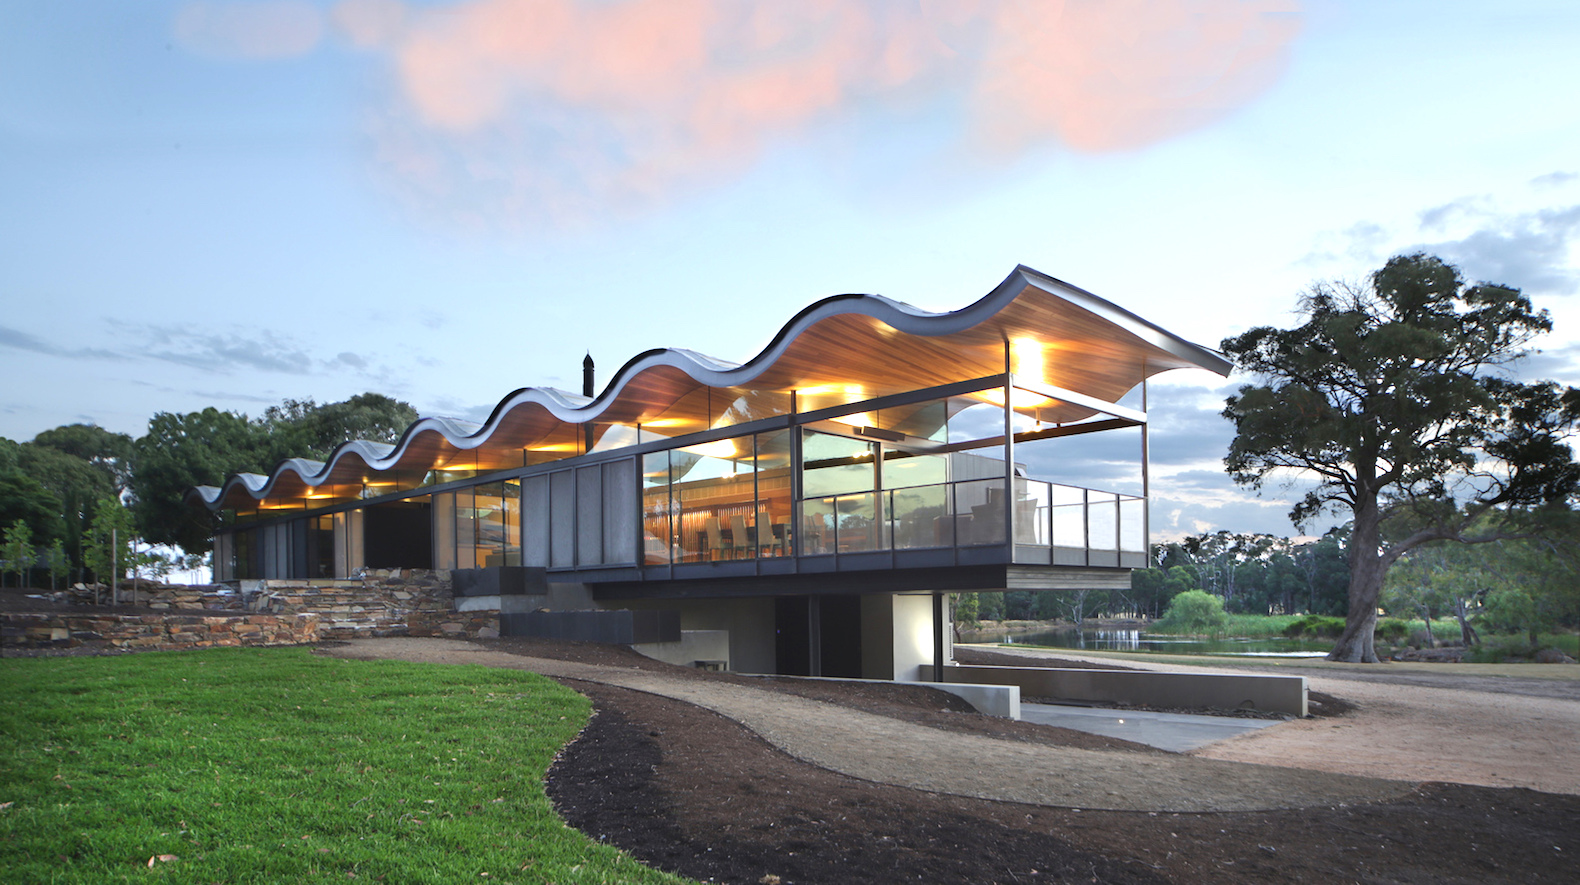 """Passive solar home built of recycled natural materials """"floats"""" in the Australian bush"""